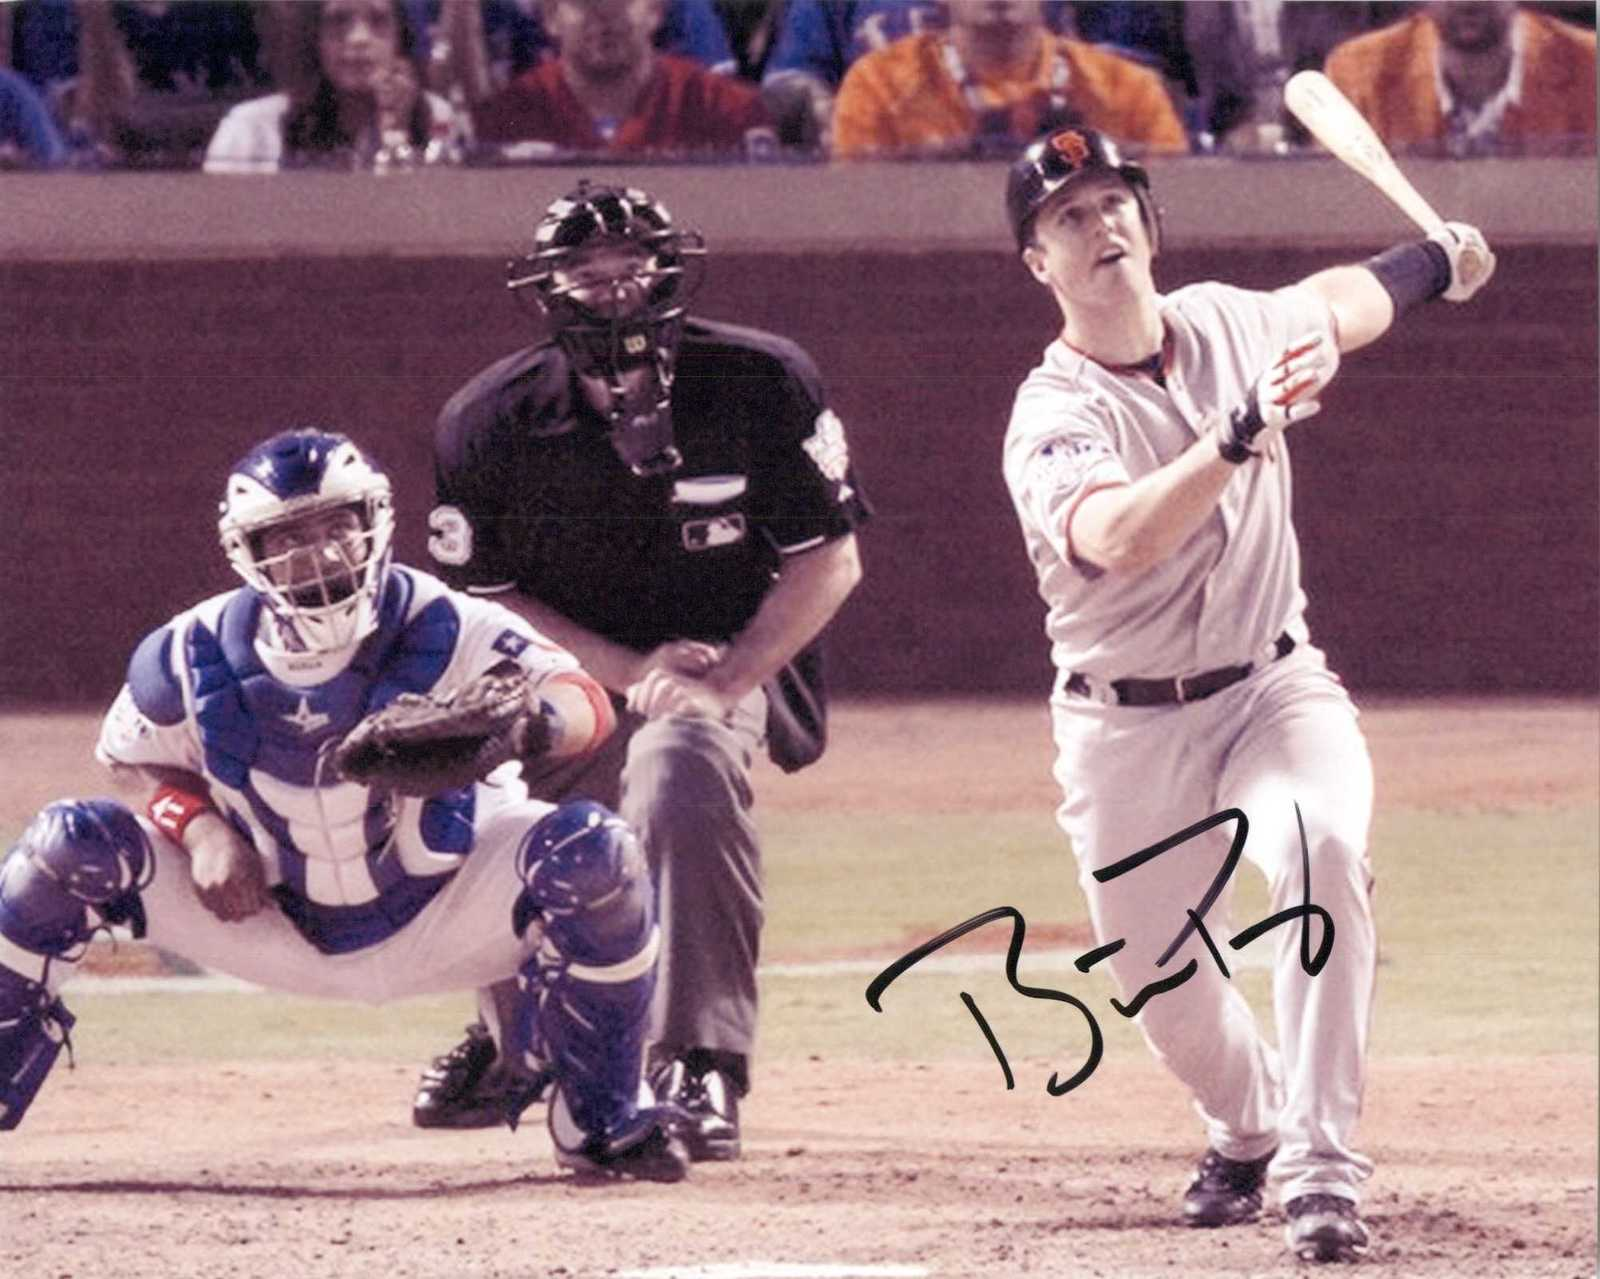 Primary image for Buster Posey Signed Autographed Glossy 8x10 Photo - San Francisco Giants